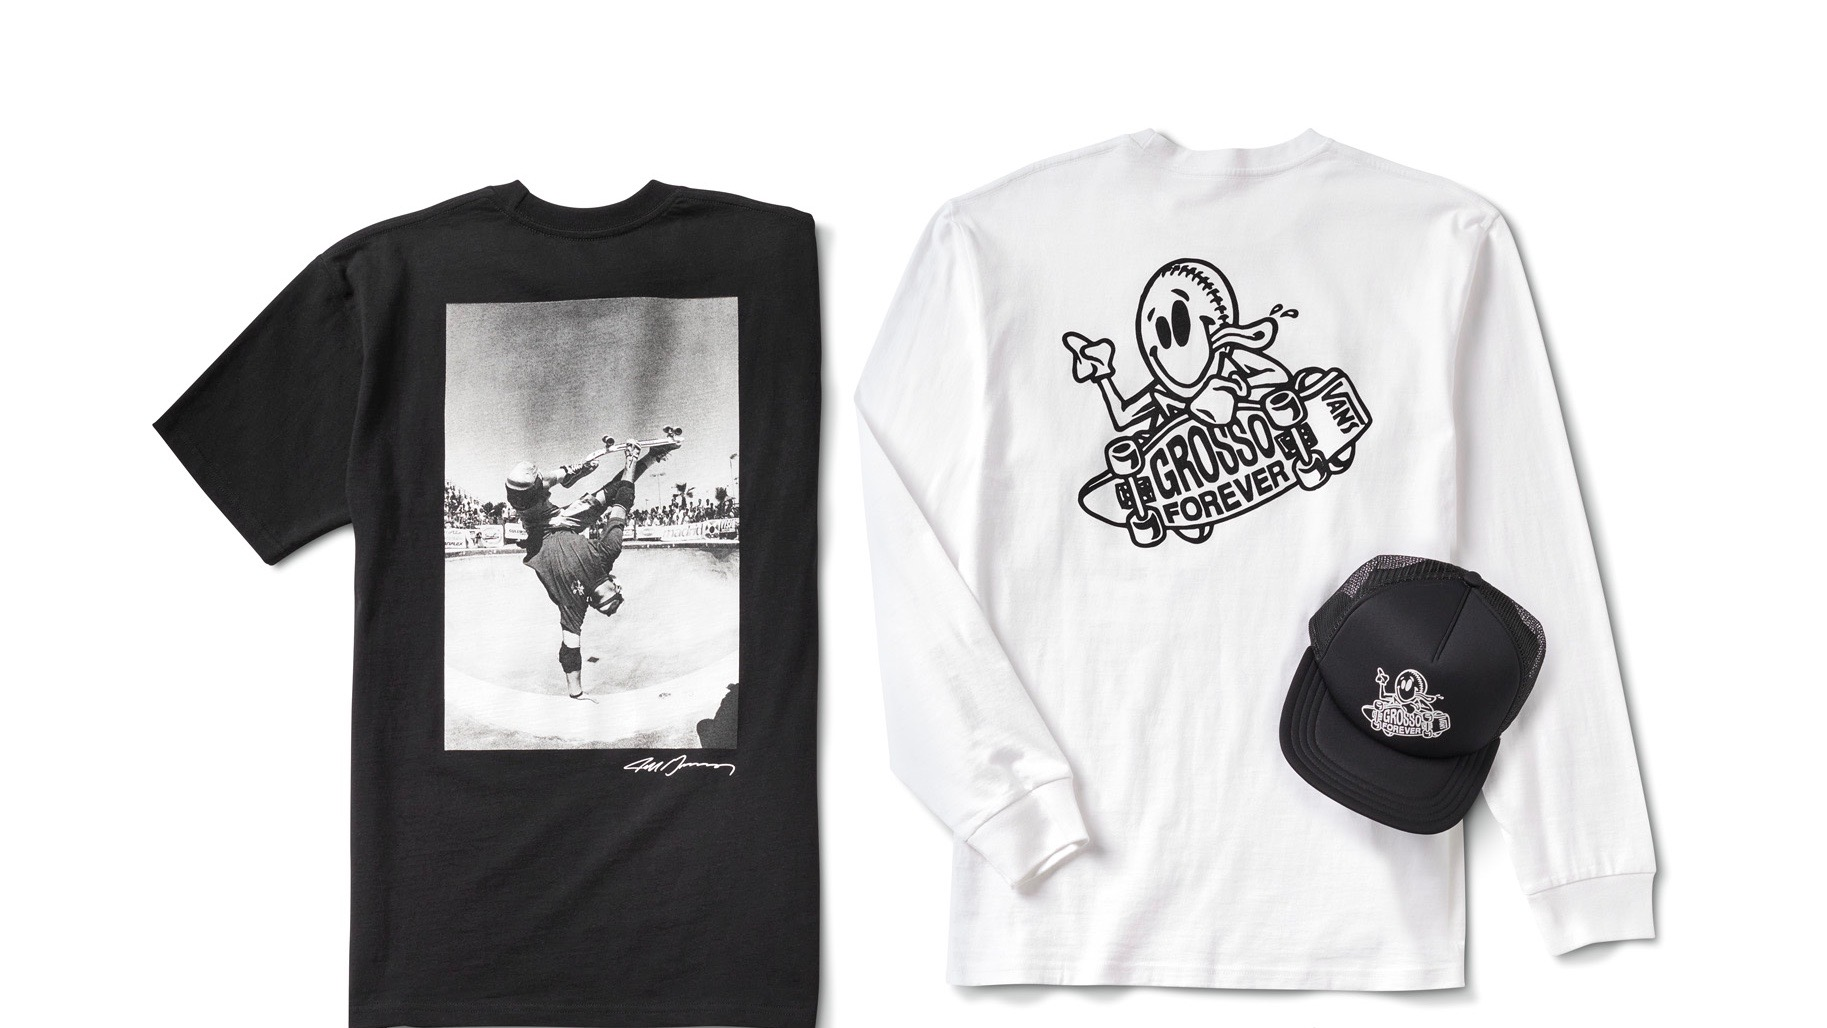 SP21 Skate GrossoForever Collection